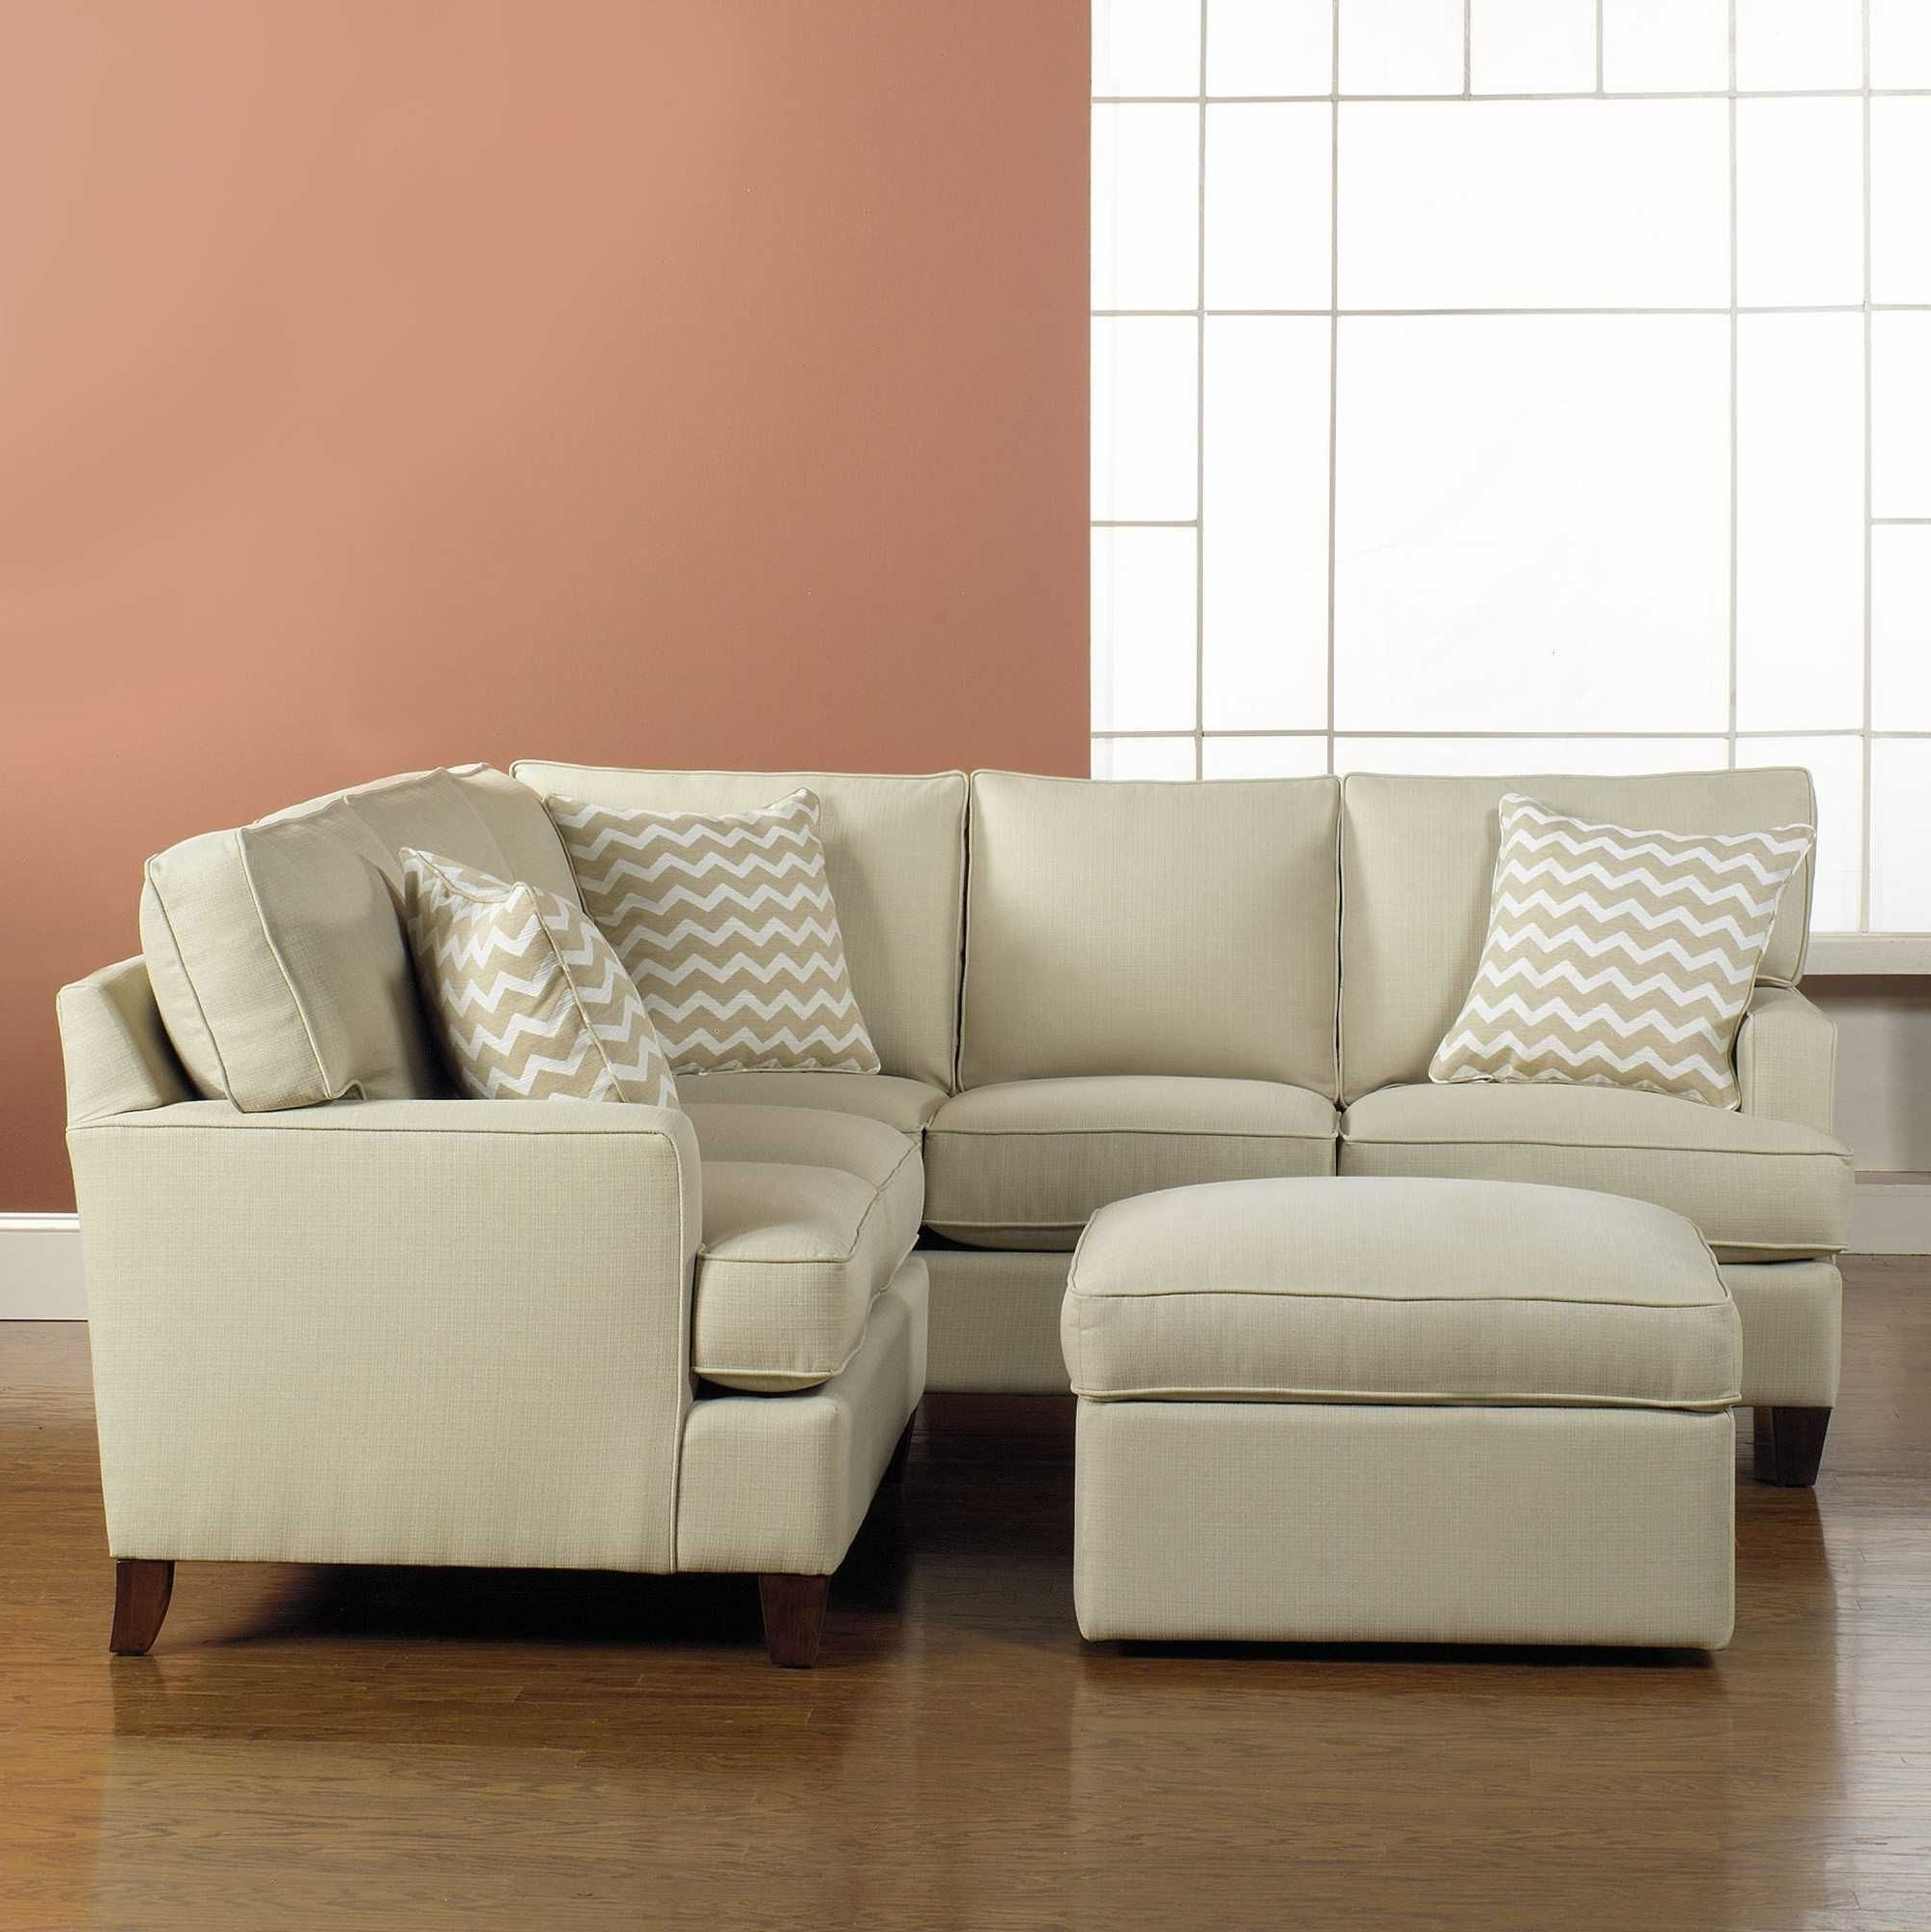 Sectional Sofas With Recliners For Small Spaces Inside Most Up To Date Sofa : Leather Sectional Sofas For Small Spaces Recliner Loveseat (View 16 of 20)